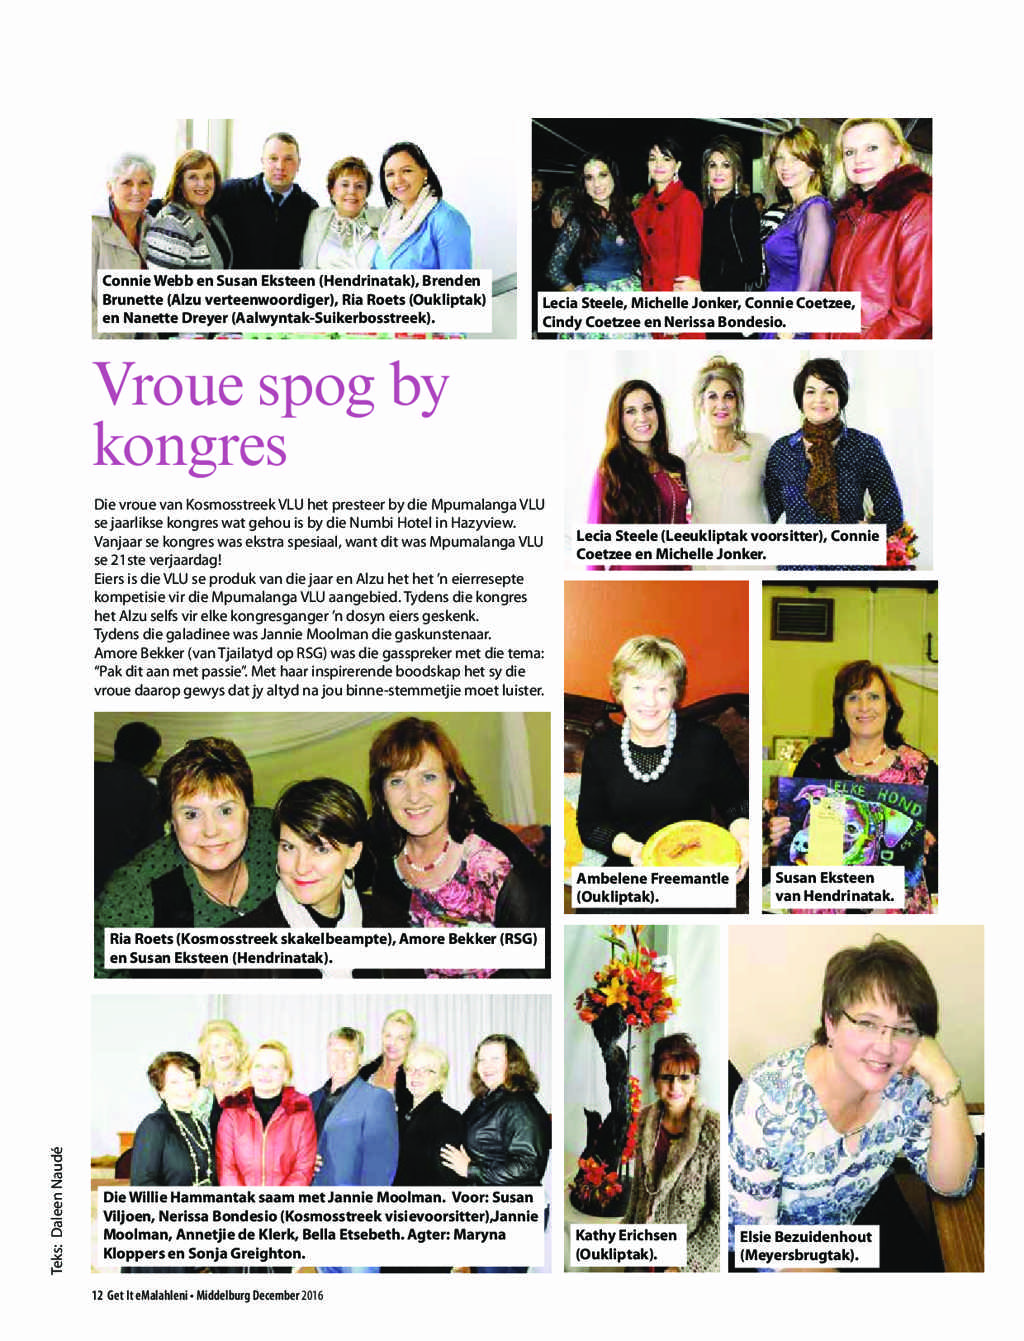 get-it-middelburg-december-2016-epapers-page-14